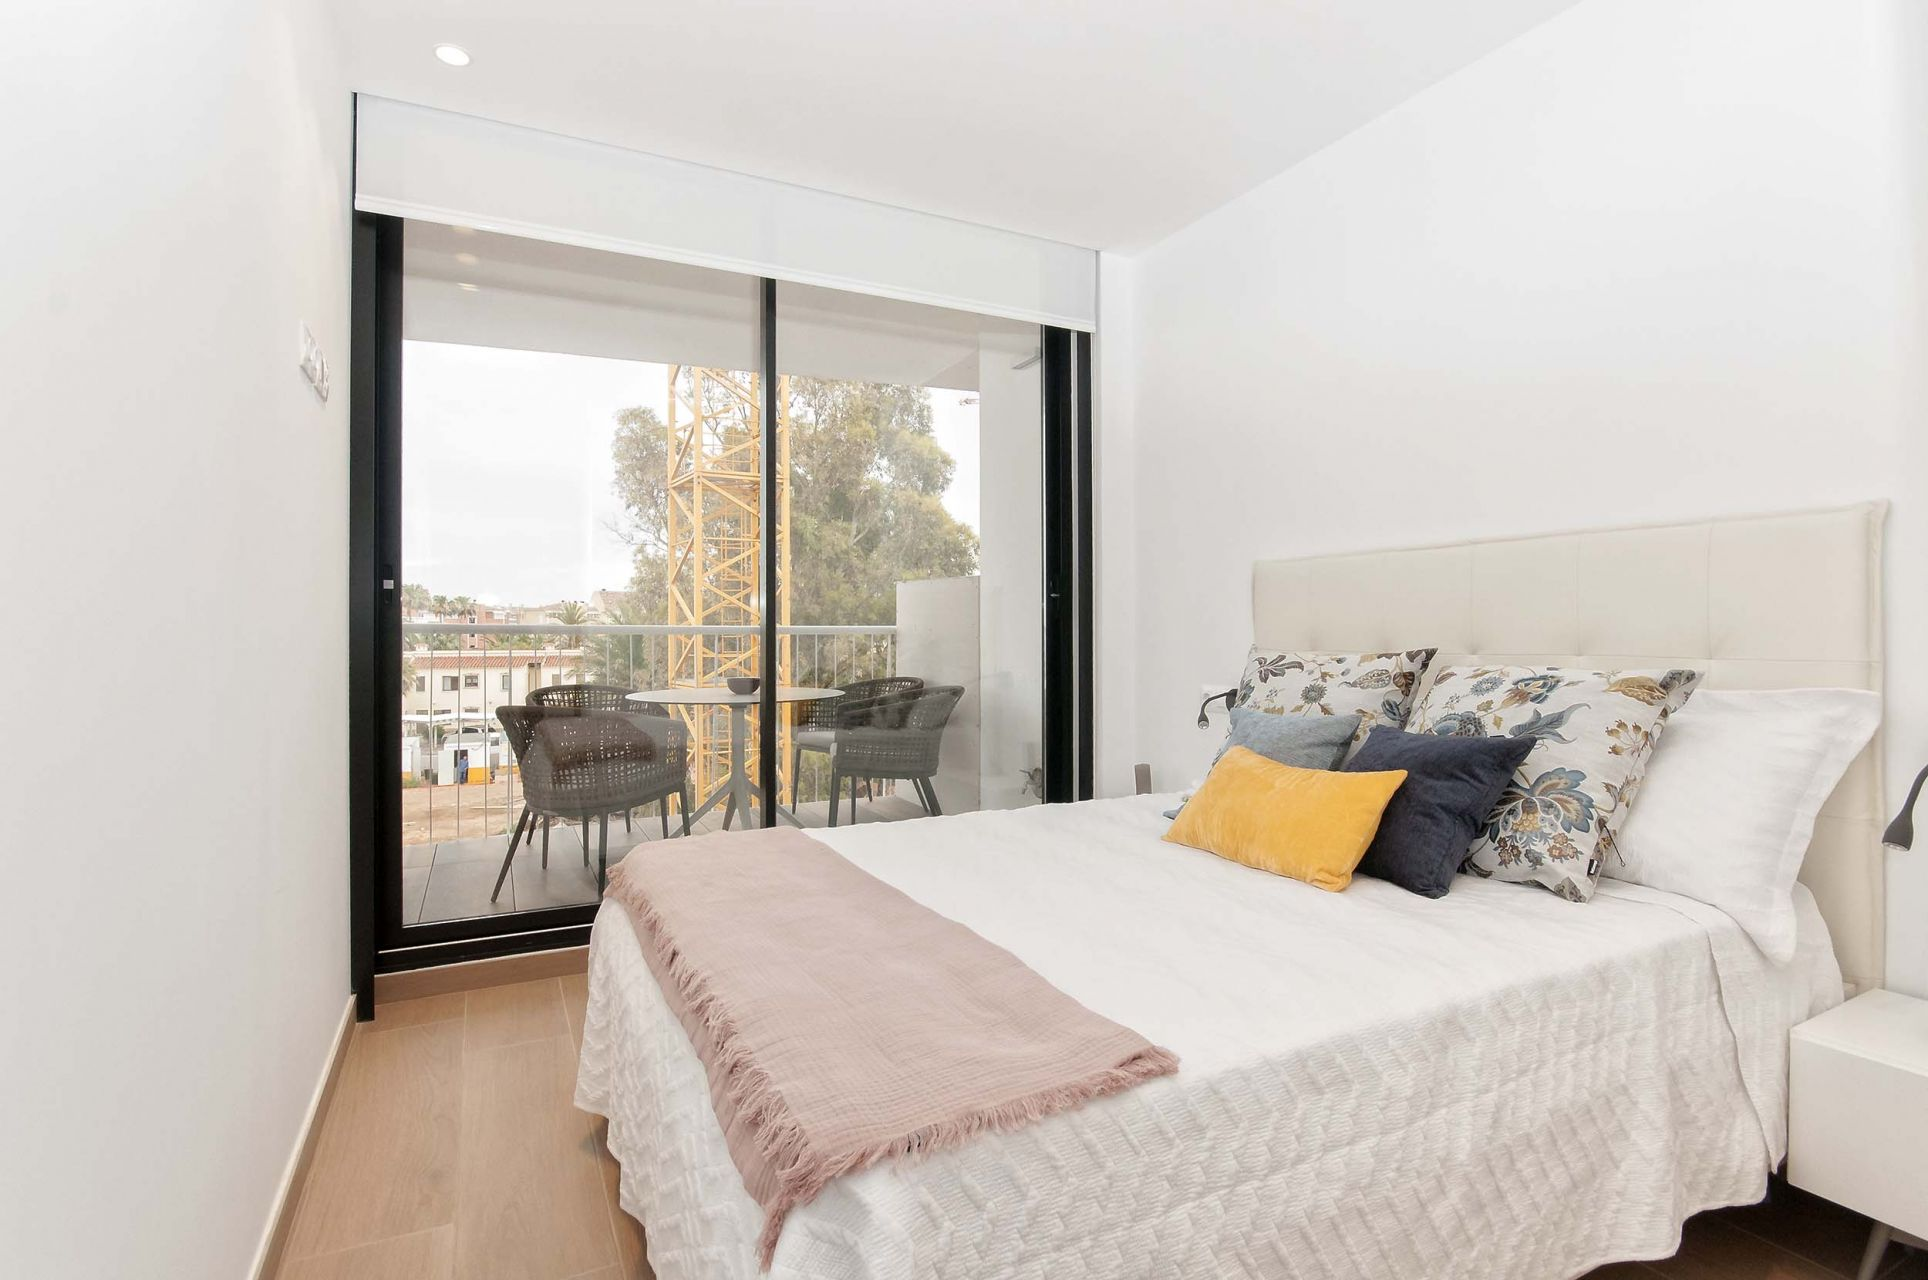 Denia Beach - 1, 2 and 3 bedroom apartments with terrace overlooking the sea or with views over the Montgó mountain, at the beach of La Almadraba beach 14